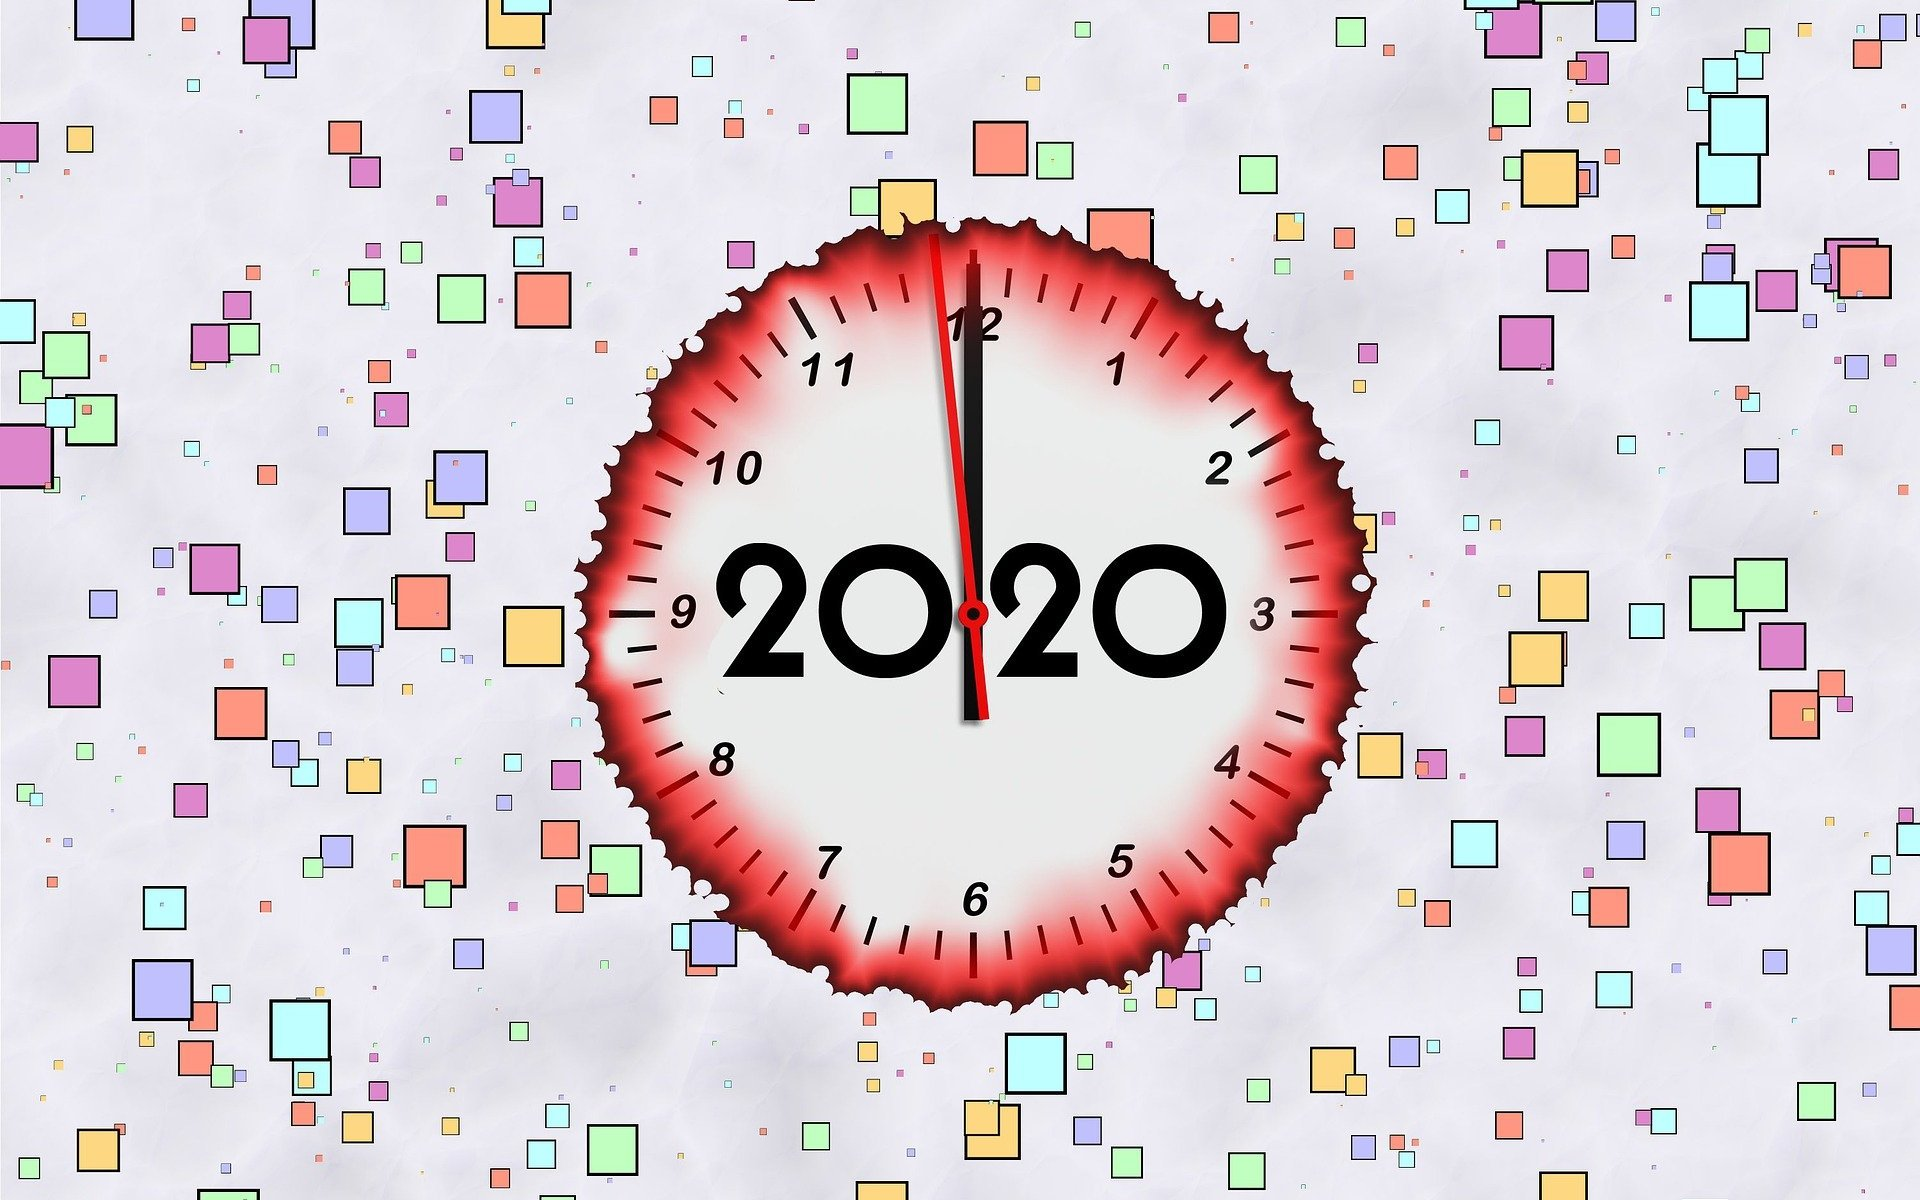 Loads of small, multicoloured squares cover the screen. In the middle is a clock with 2020 in the middle. The outline of the clock is red and fluid.